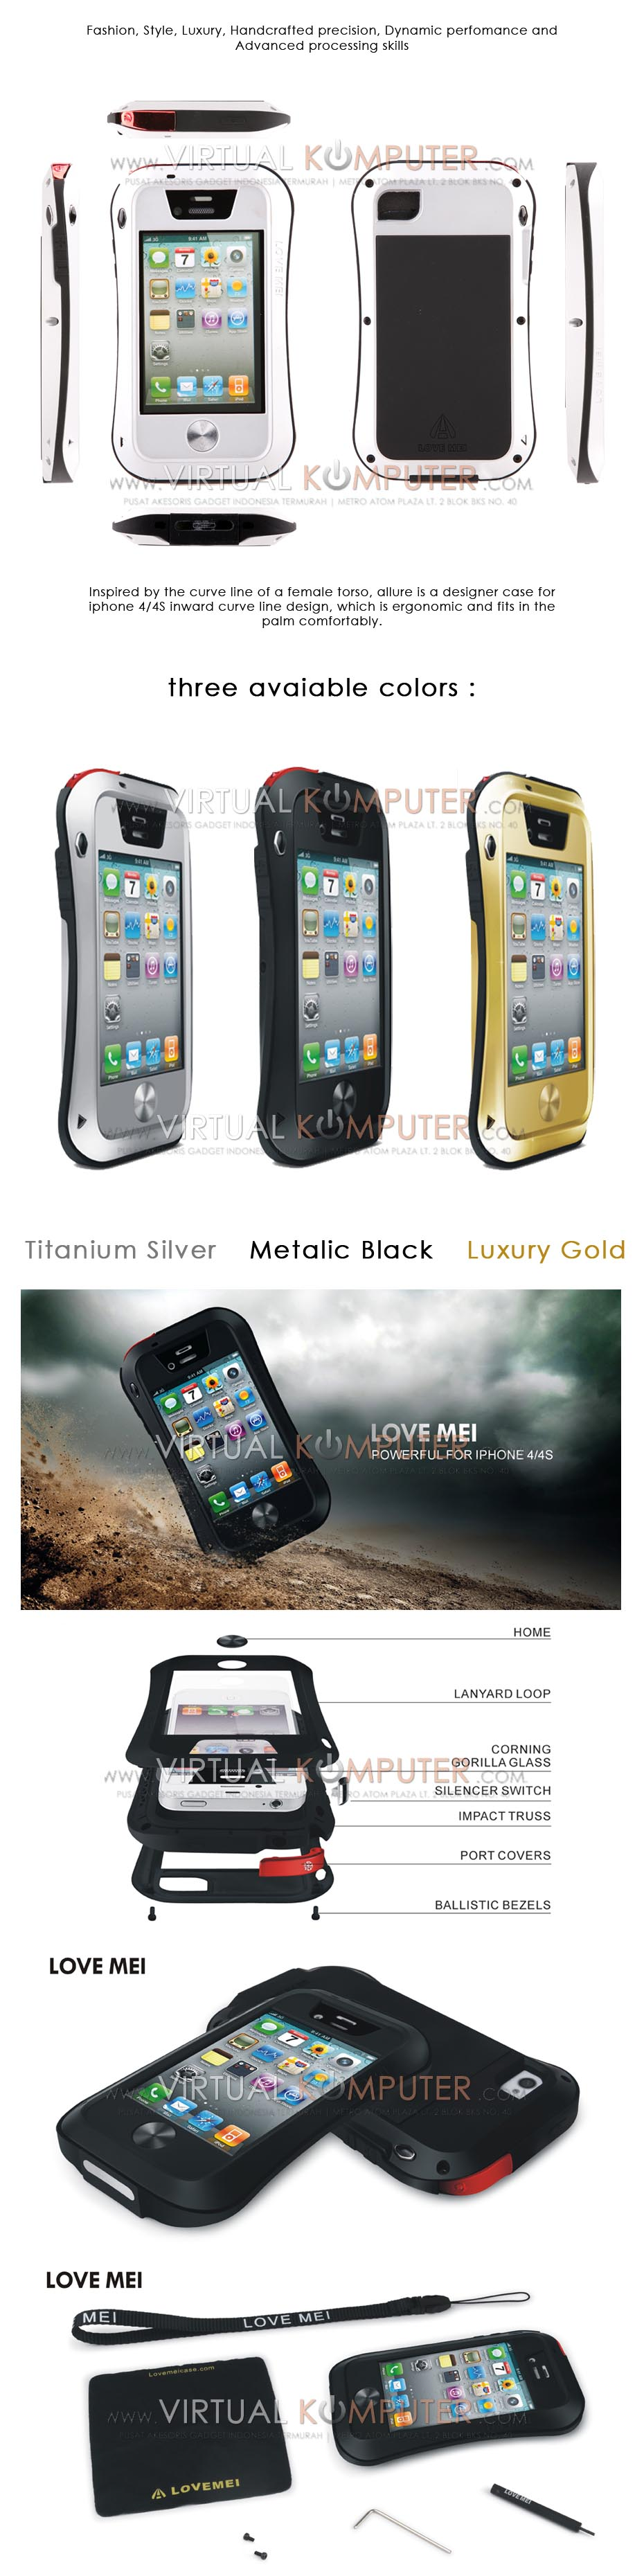 Love Mei Powerful Small Waist Upgrade Version For iPhone 4,4S Overview